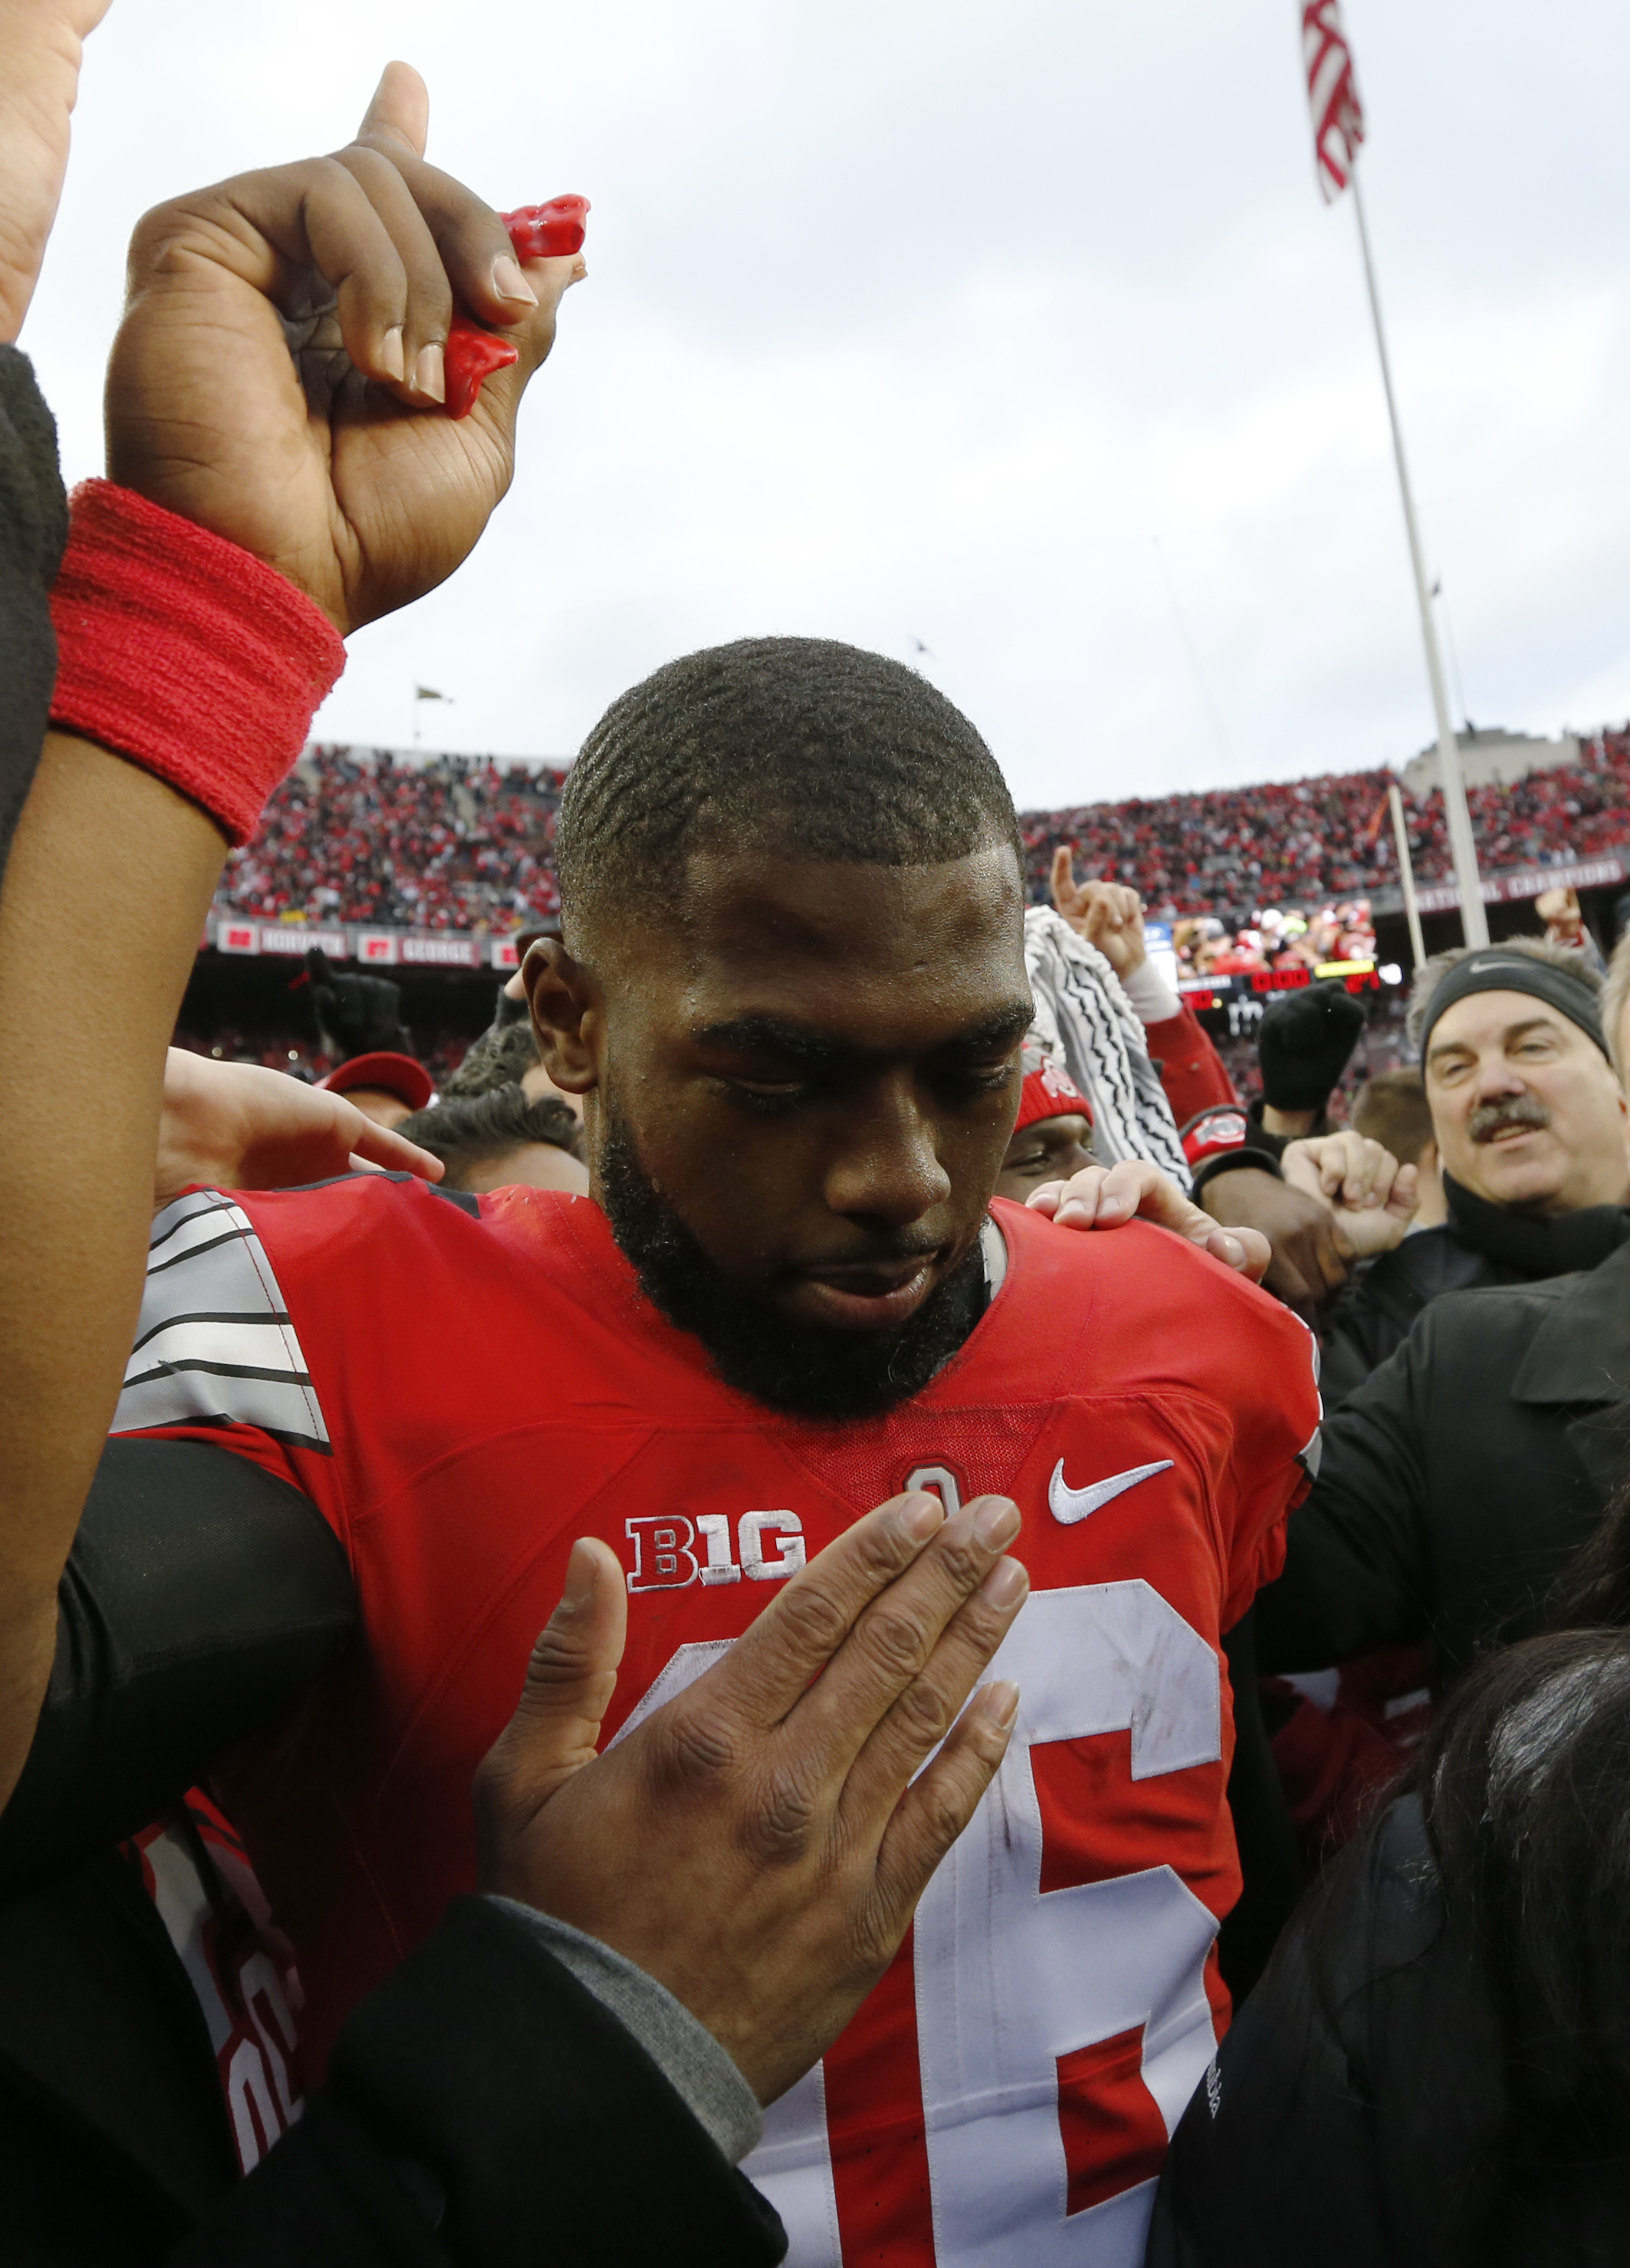 Ohio State quarterback J.T. Barrett celebrates with fans after their win over Michigan in an NCAA college football game Saturday, Nov. 26, 2016, in Columbus, Ohio. Ohio State beat Michigan 30-27 in double overtime. (AP Photo/Jay LaPrete)